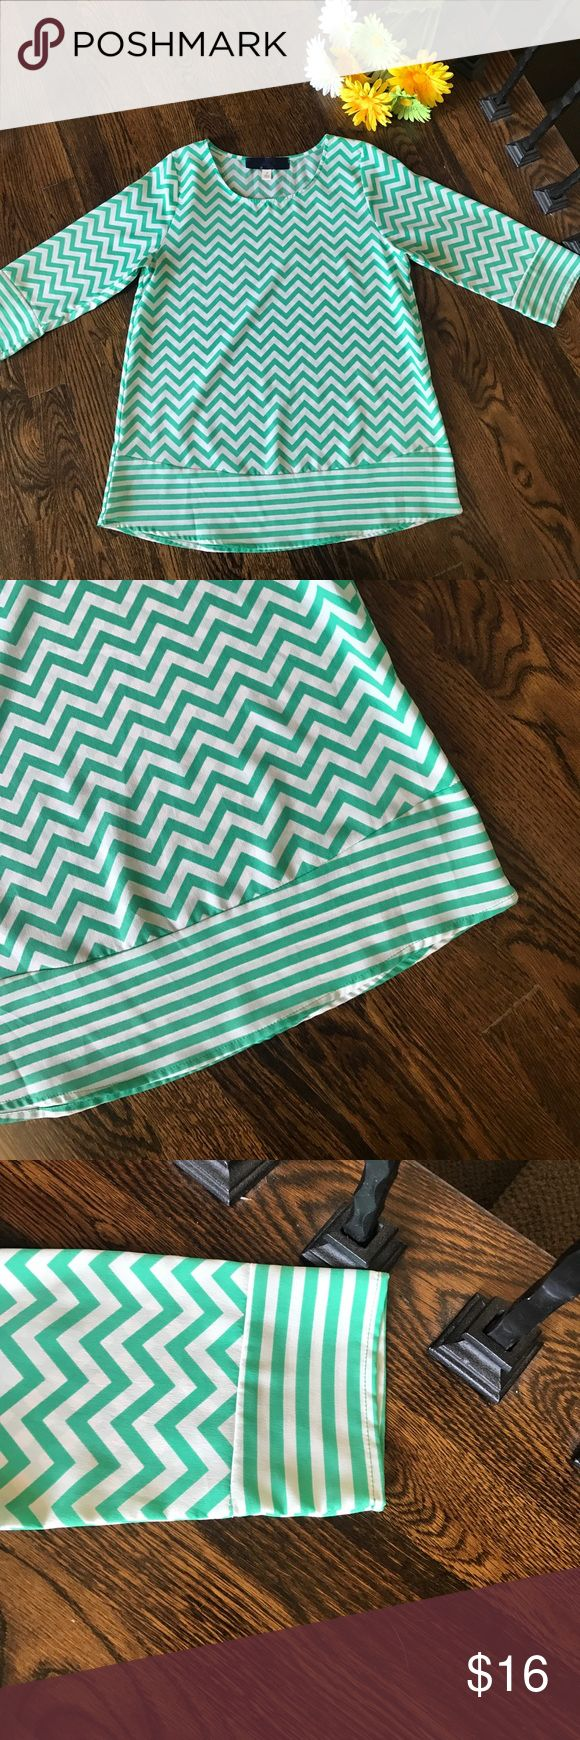 Teal & White Chevron Top, Sz S Super cute teal and white top purchased from a local boutique. Three quarter sleeves. Lightweight fabric. NEVER needs ironed! Great for travel and summer at the office. Tops